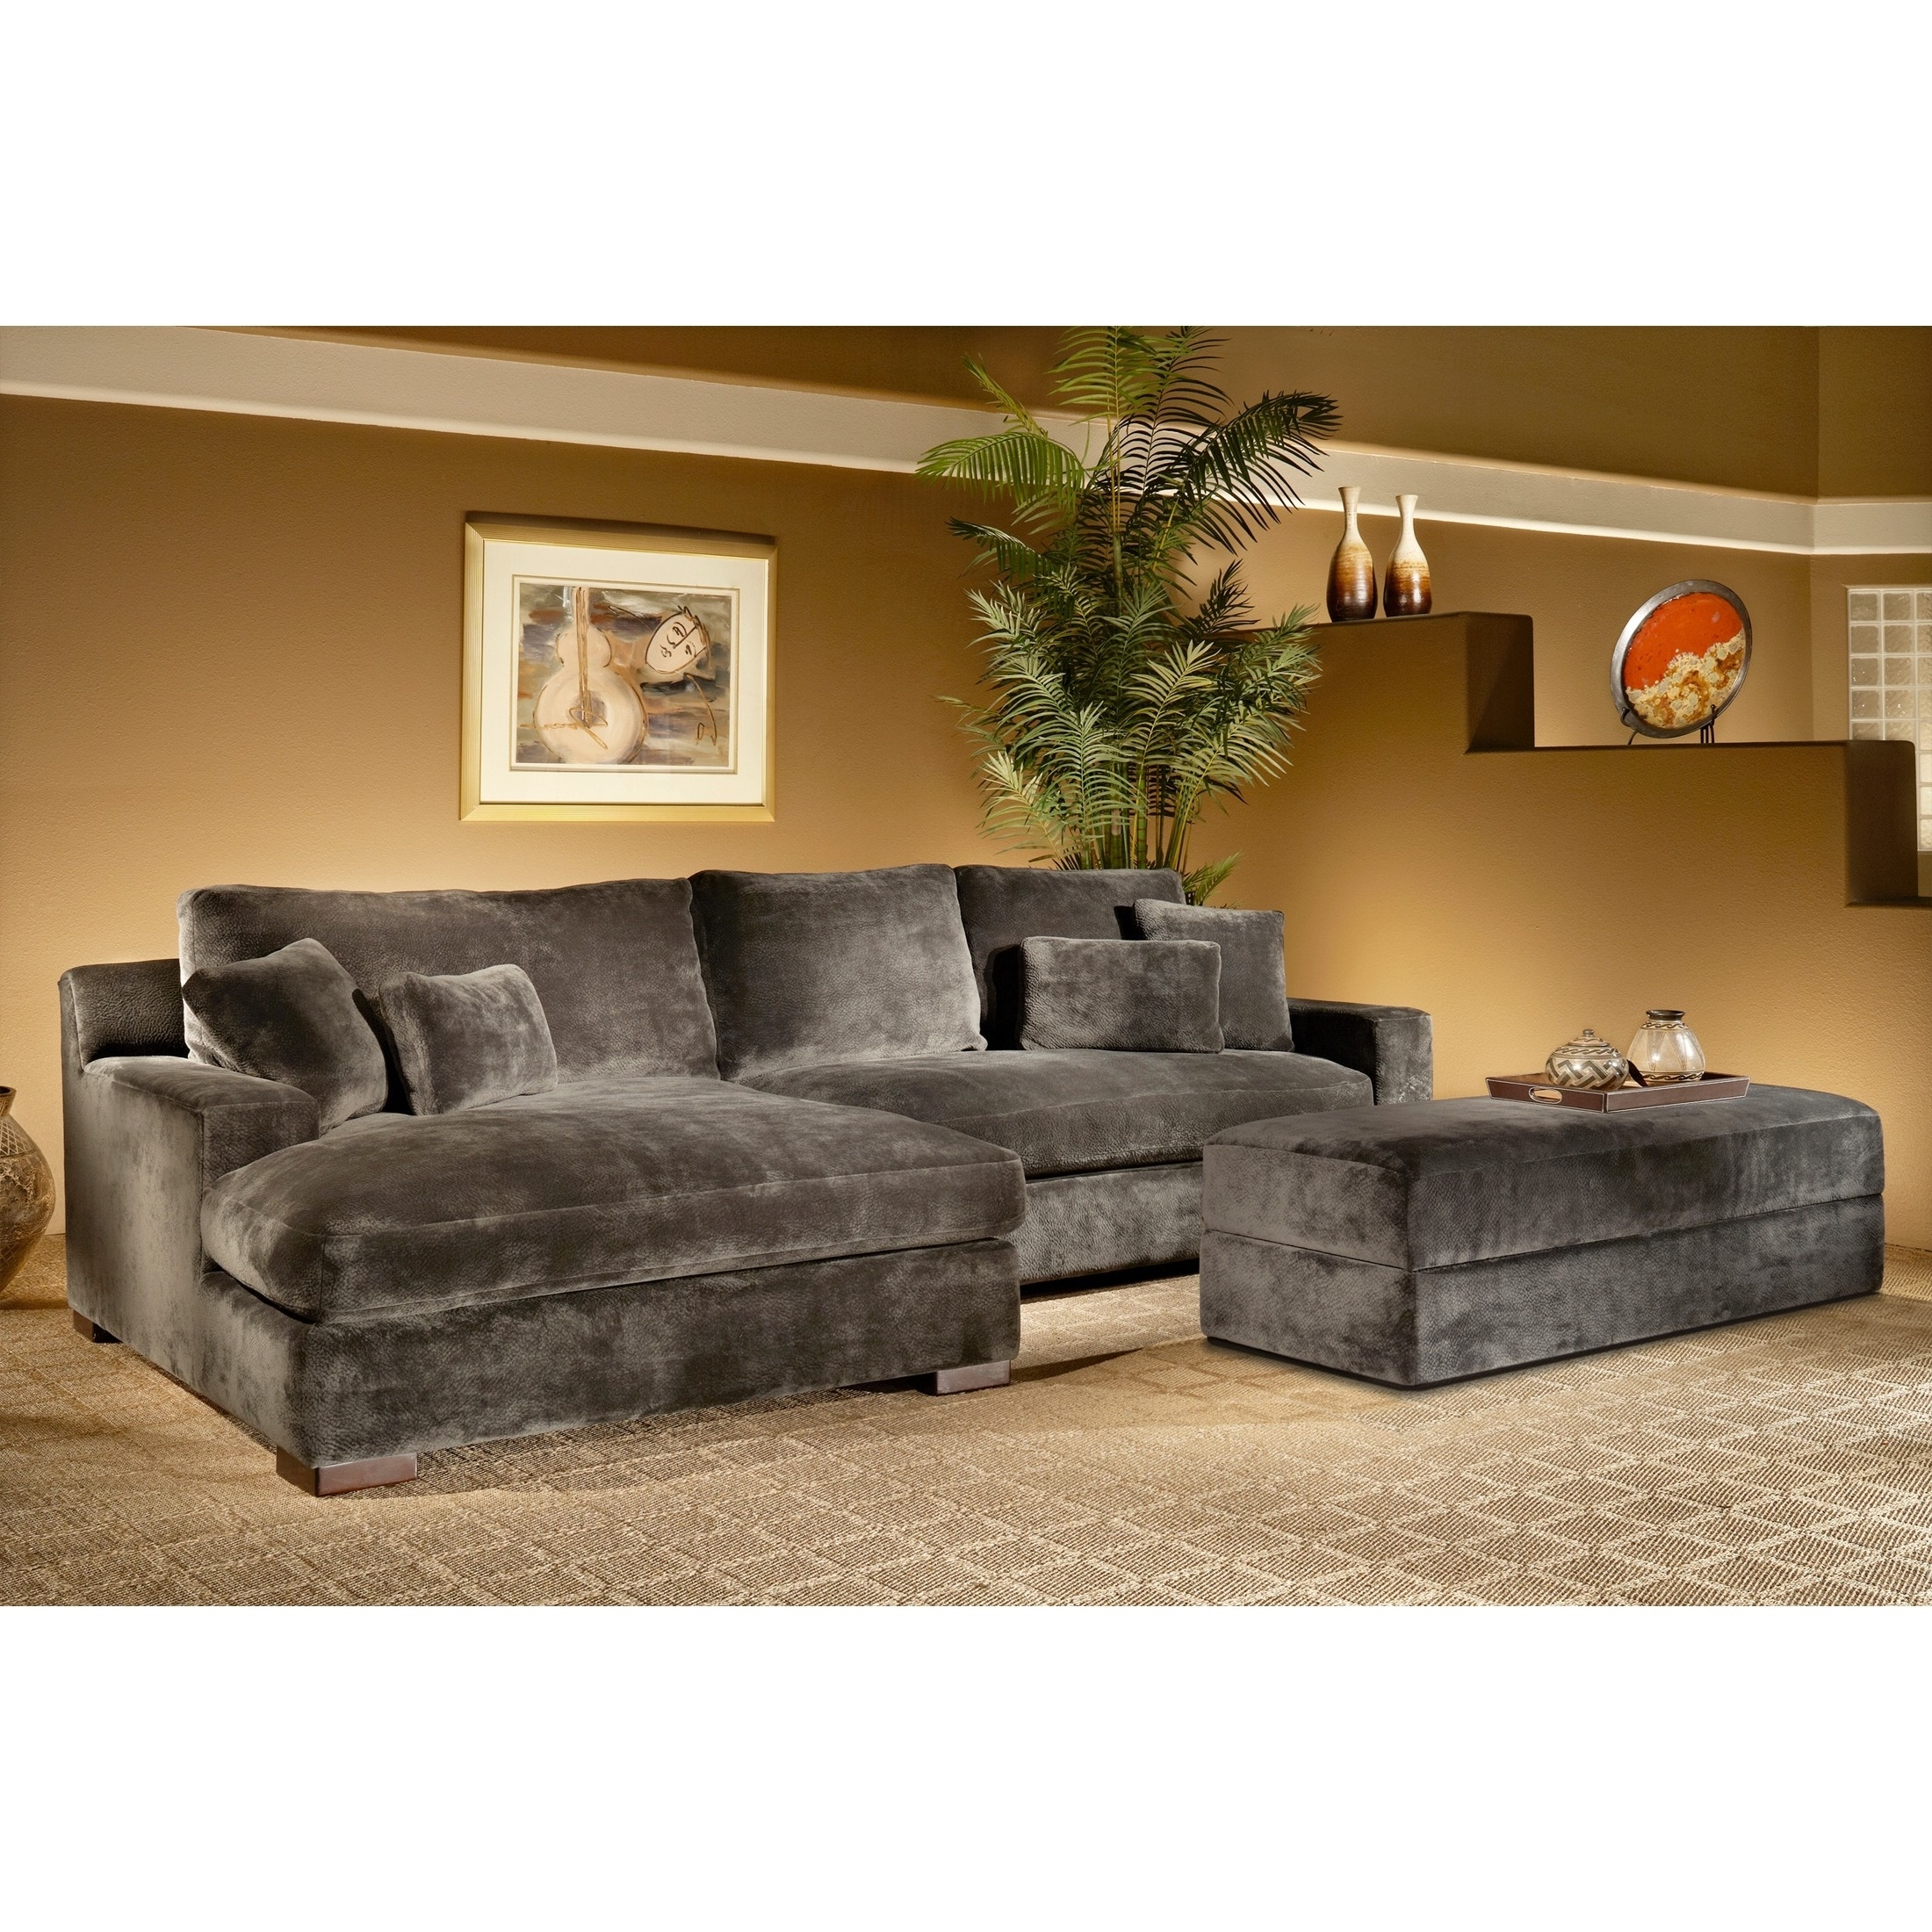 2019 Overstuffed Sofas And Chairs Regarding The Doris 3 Piece Smoke Sectional Sofa With Storage Ottoman Is (View 1 of 20)